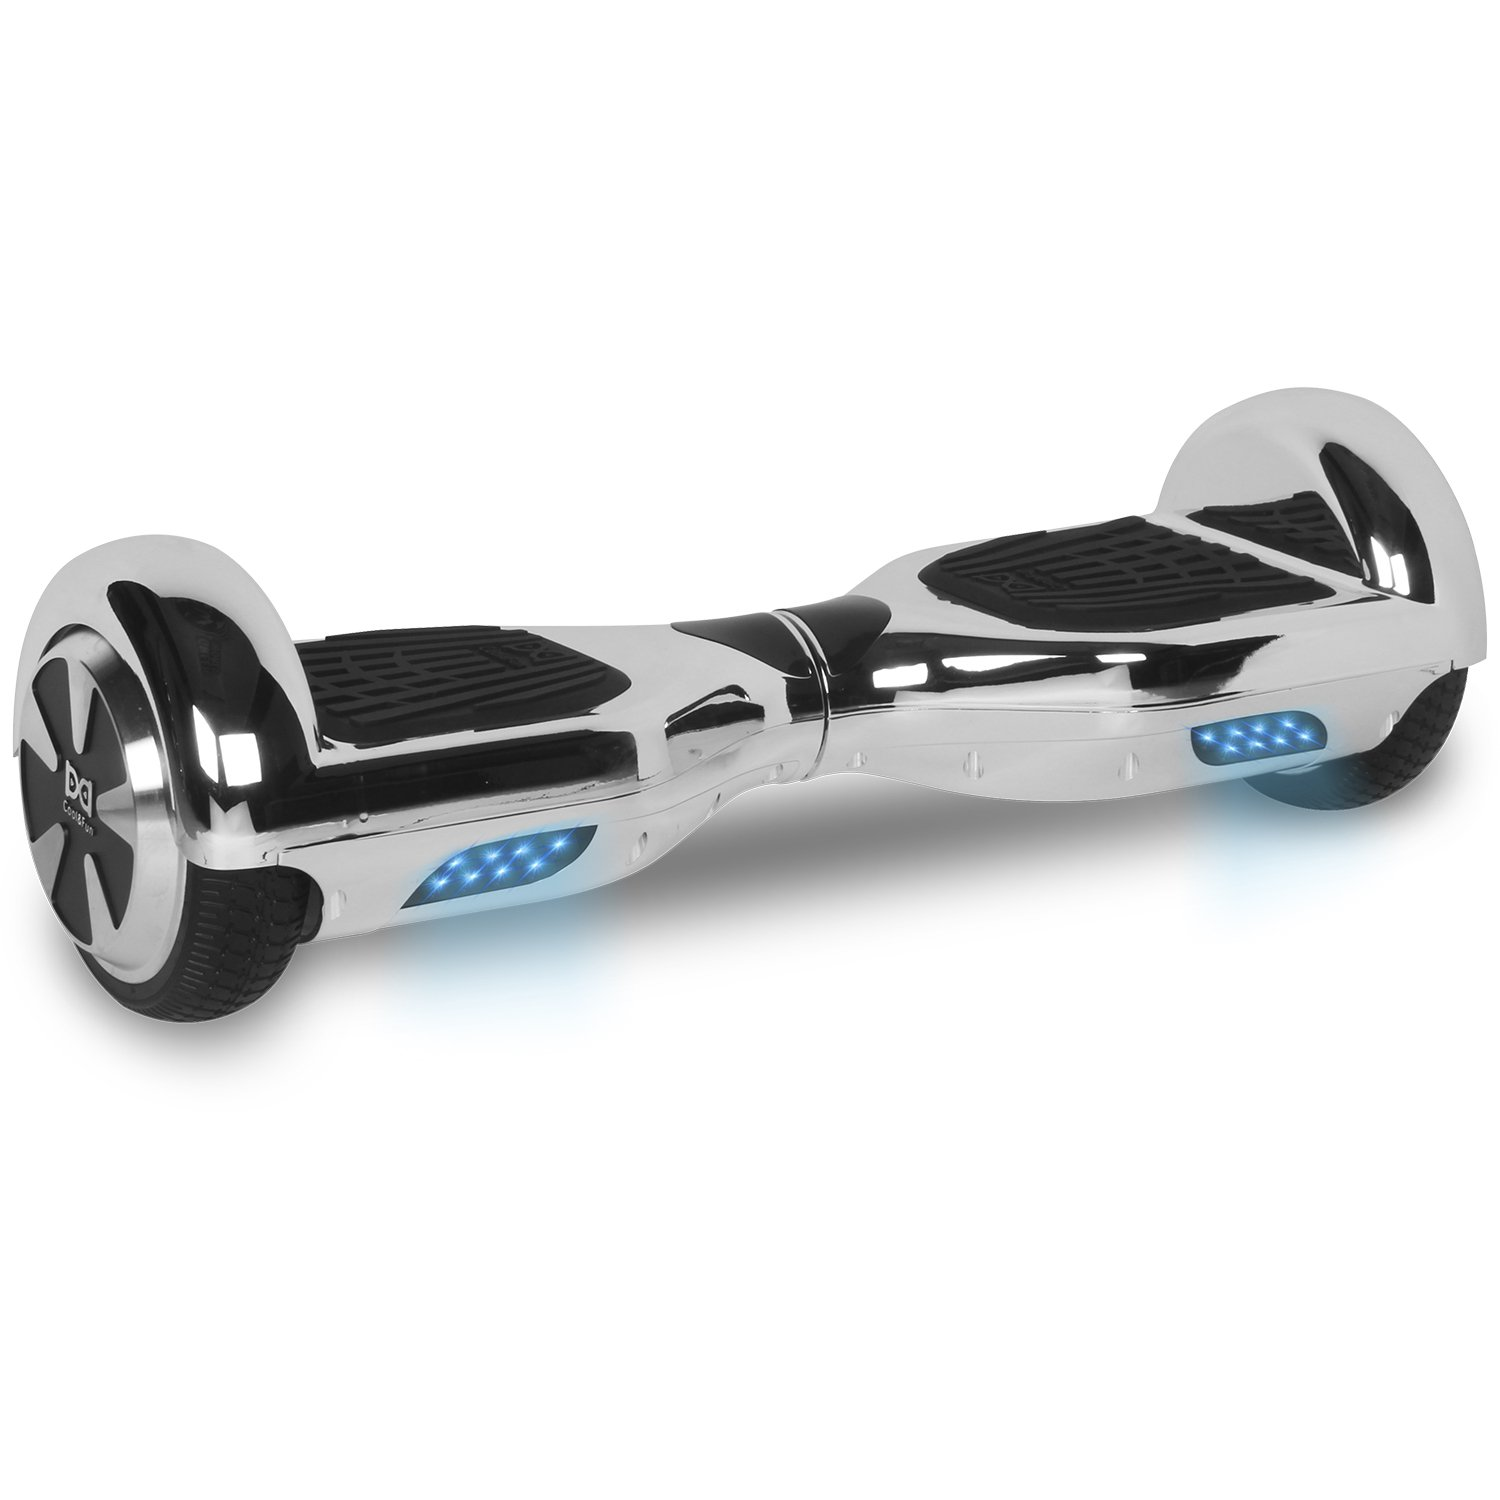 Cool Fun Hoverboard Patinete Eléctrico Scooter talla  de Shop Gyrogeek Plata